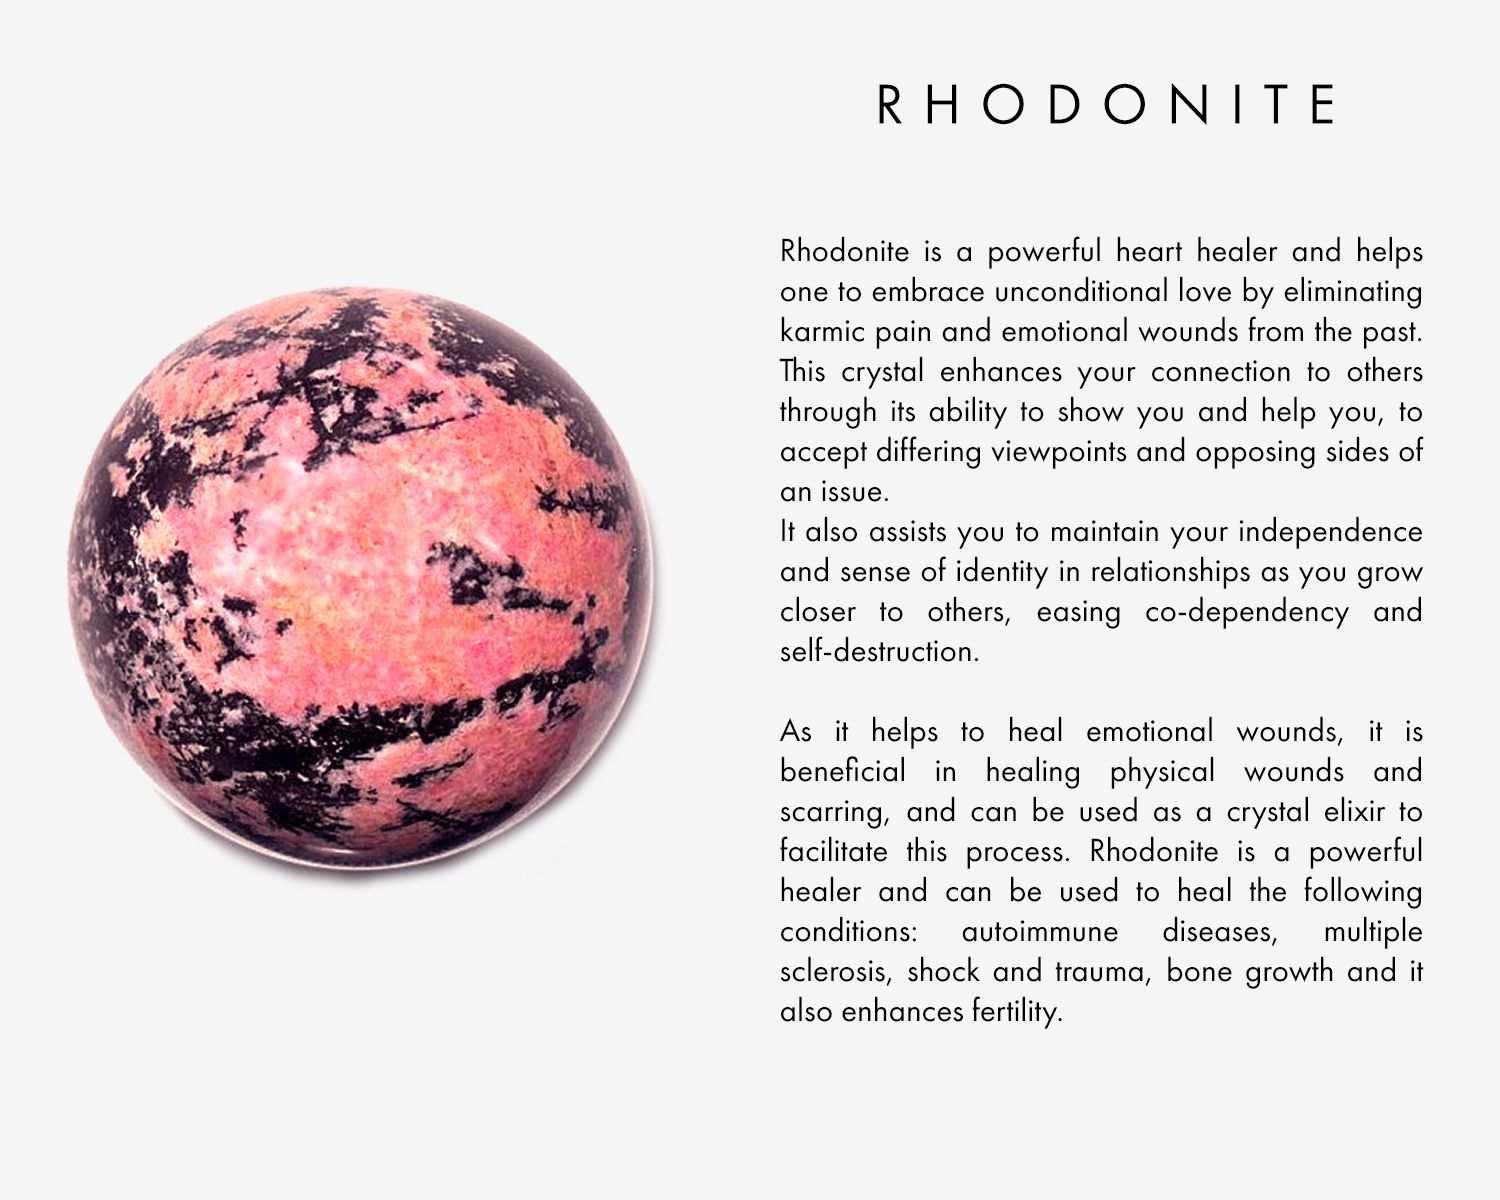 Rhodonite is a powerful heart healer and helps one to